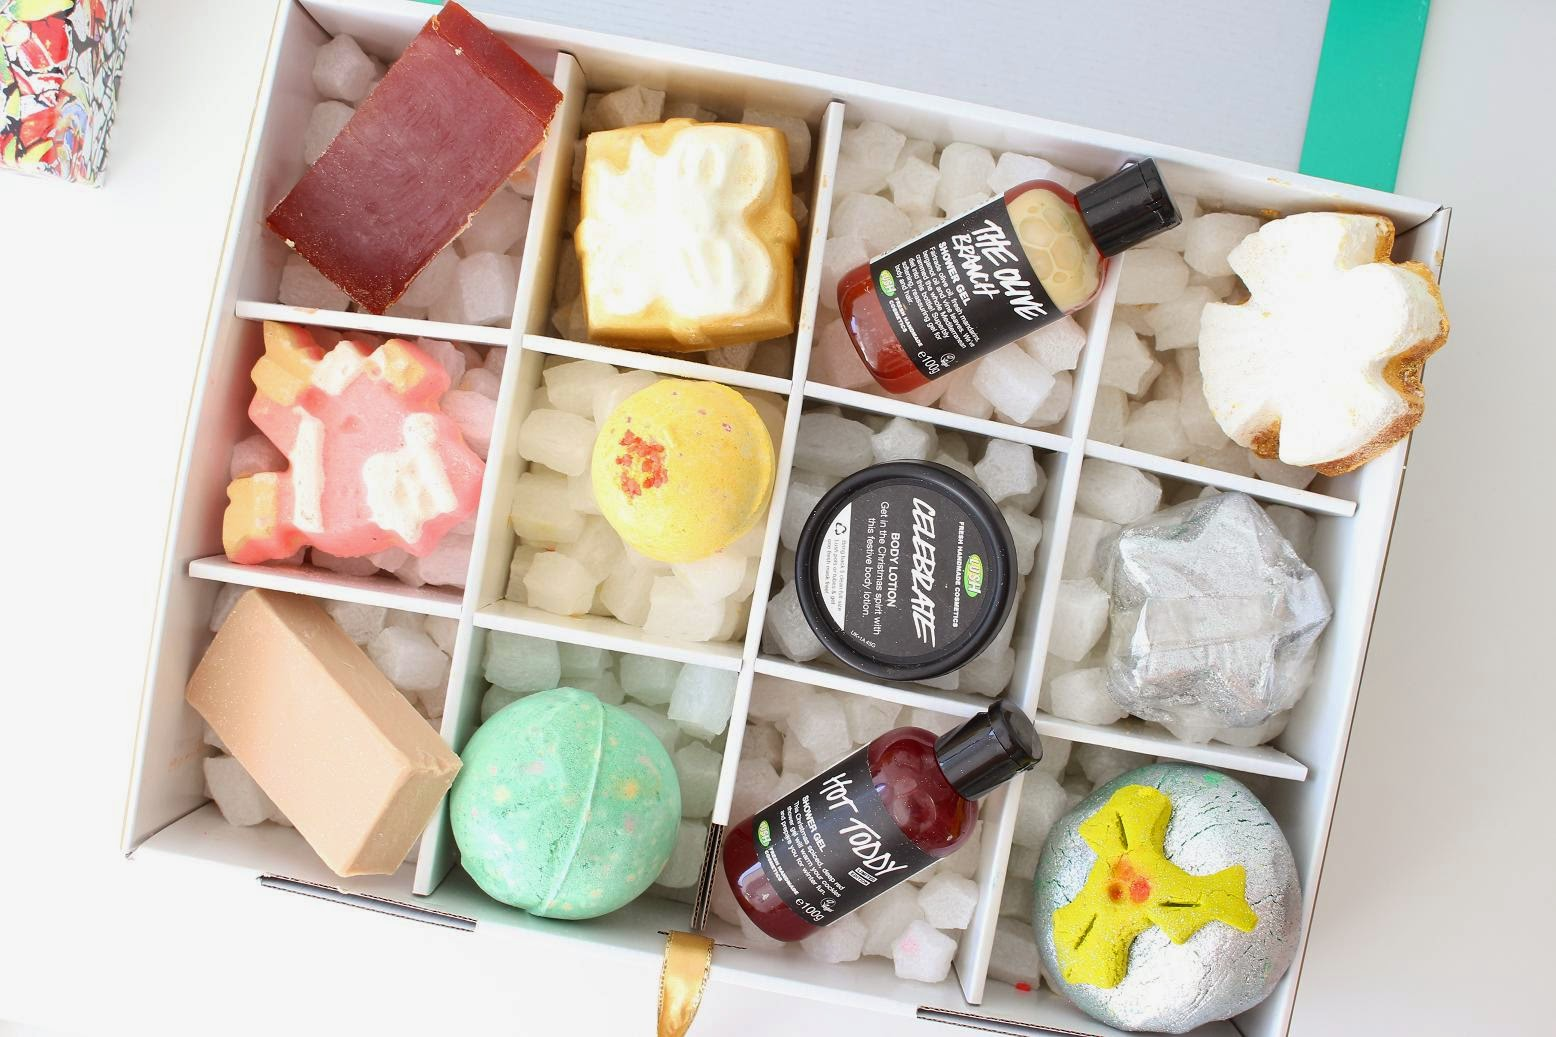 Lush 12 Days of Christmas